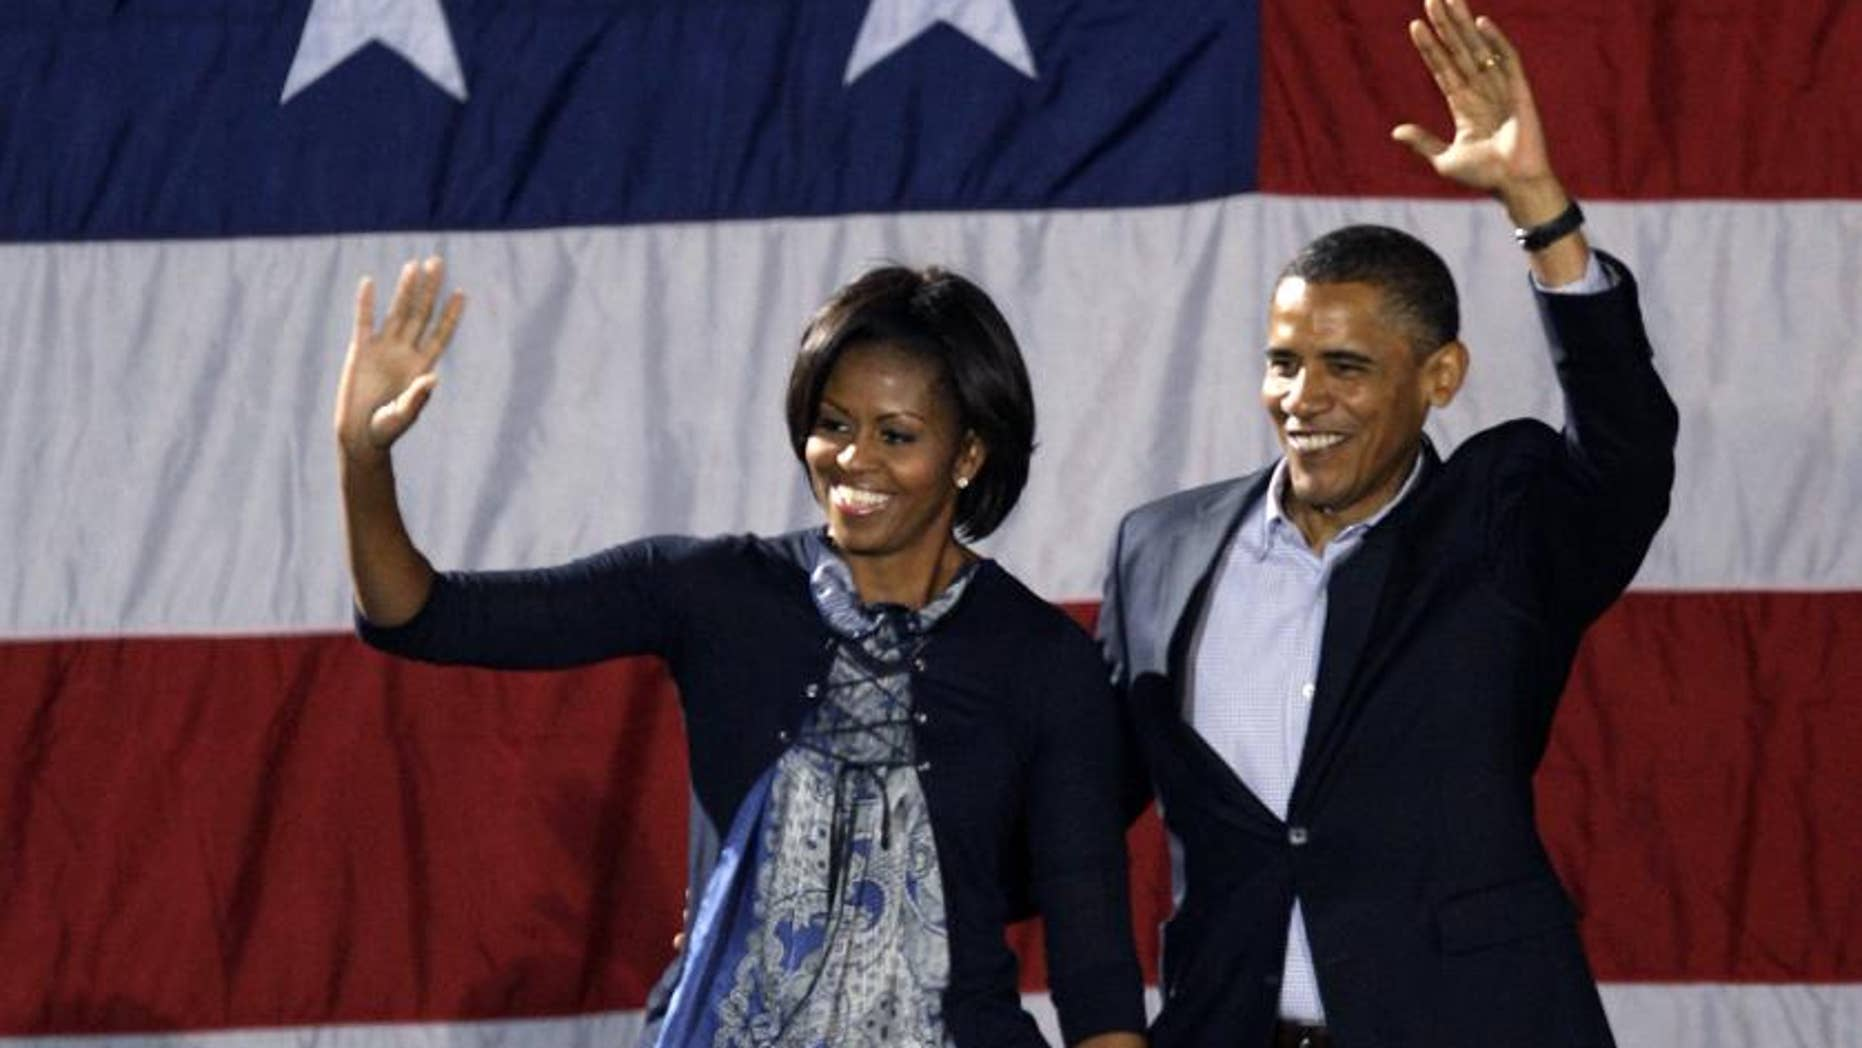 The President and First Lady in Ohio, October 10, 2010/AP